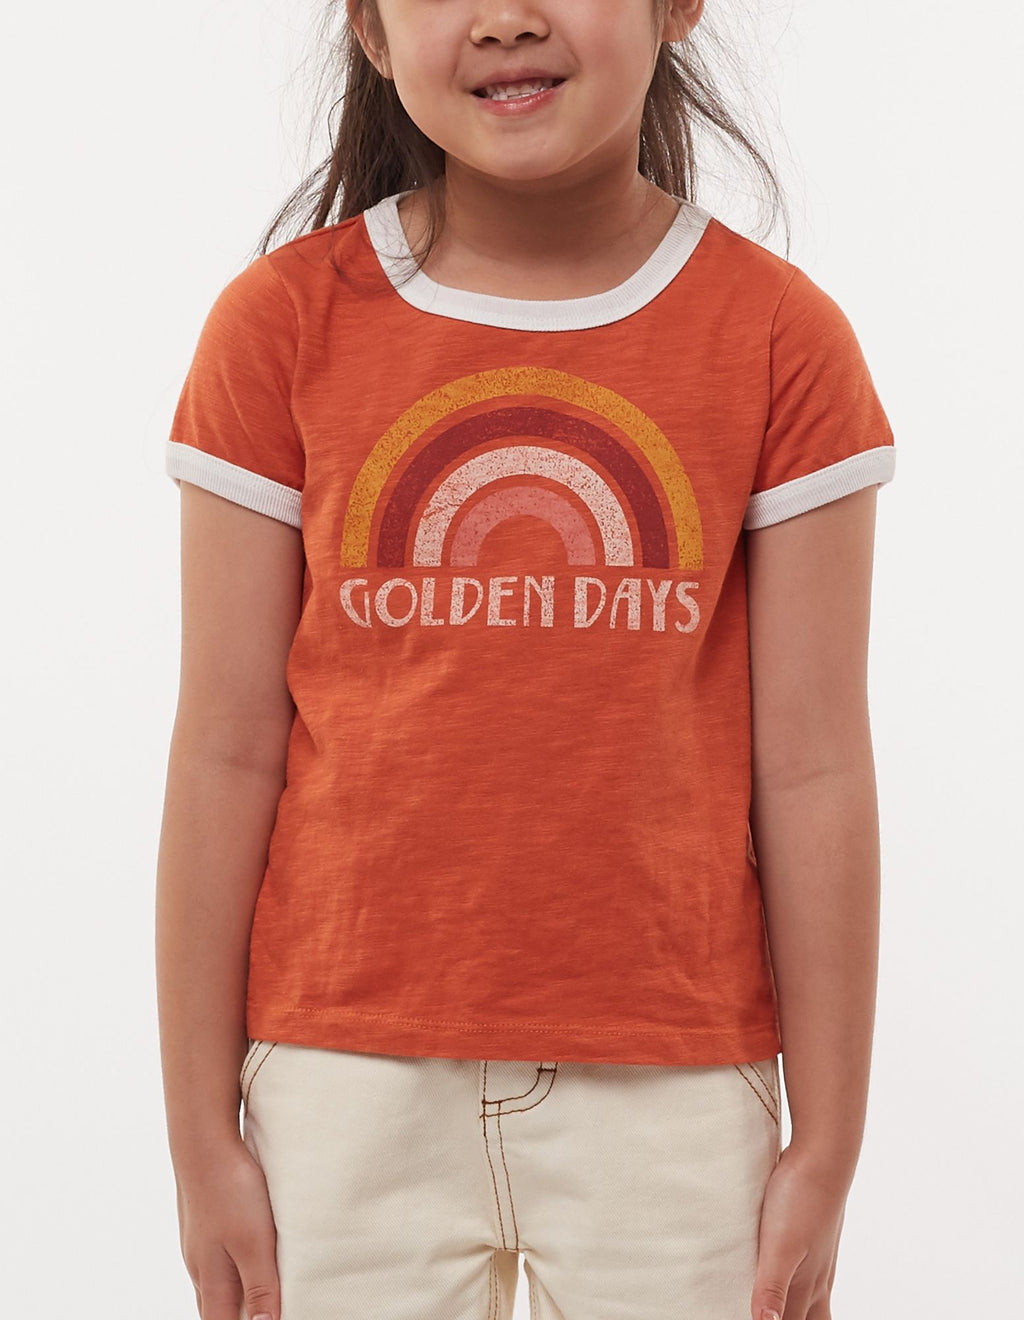 Golden Days Tee